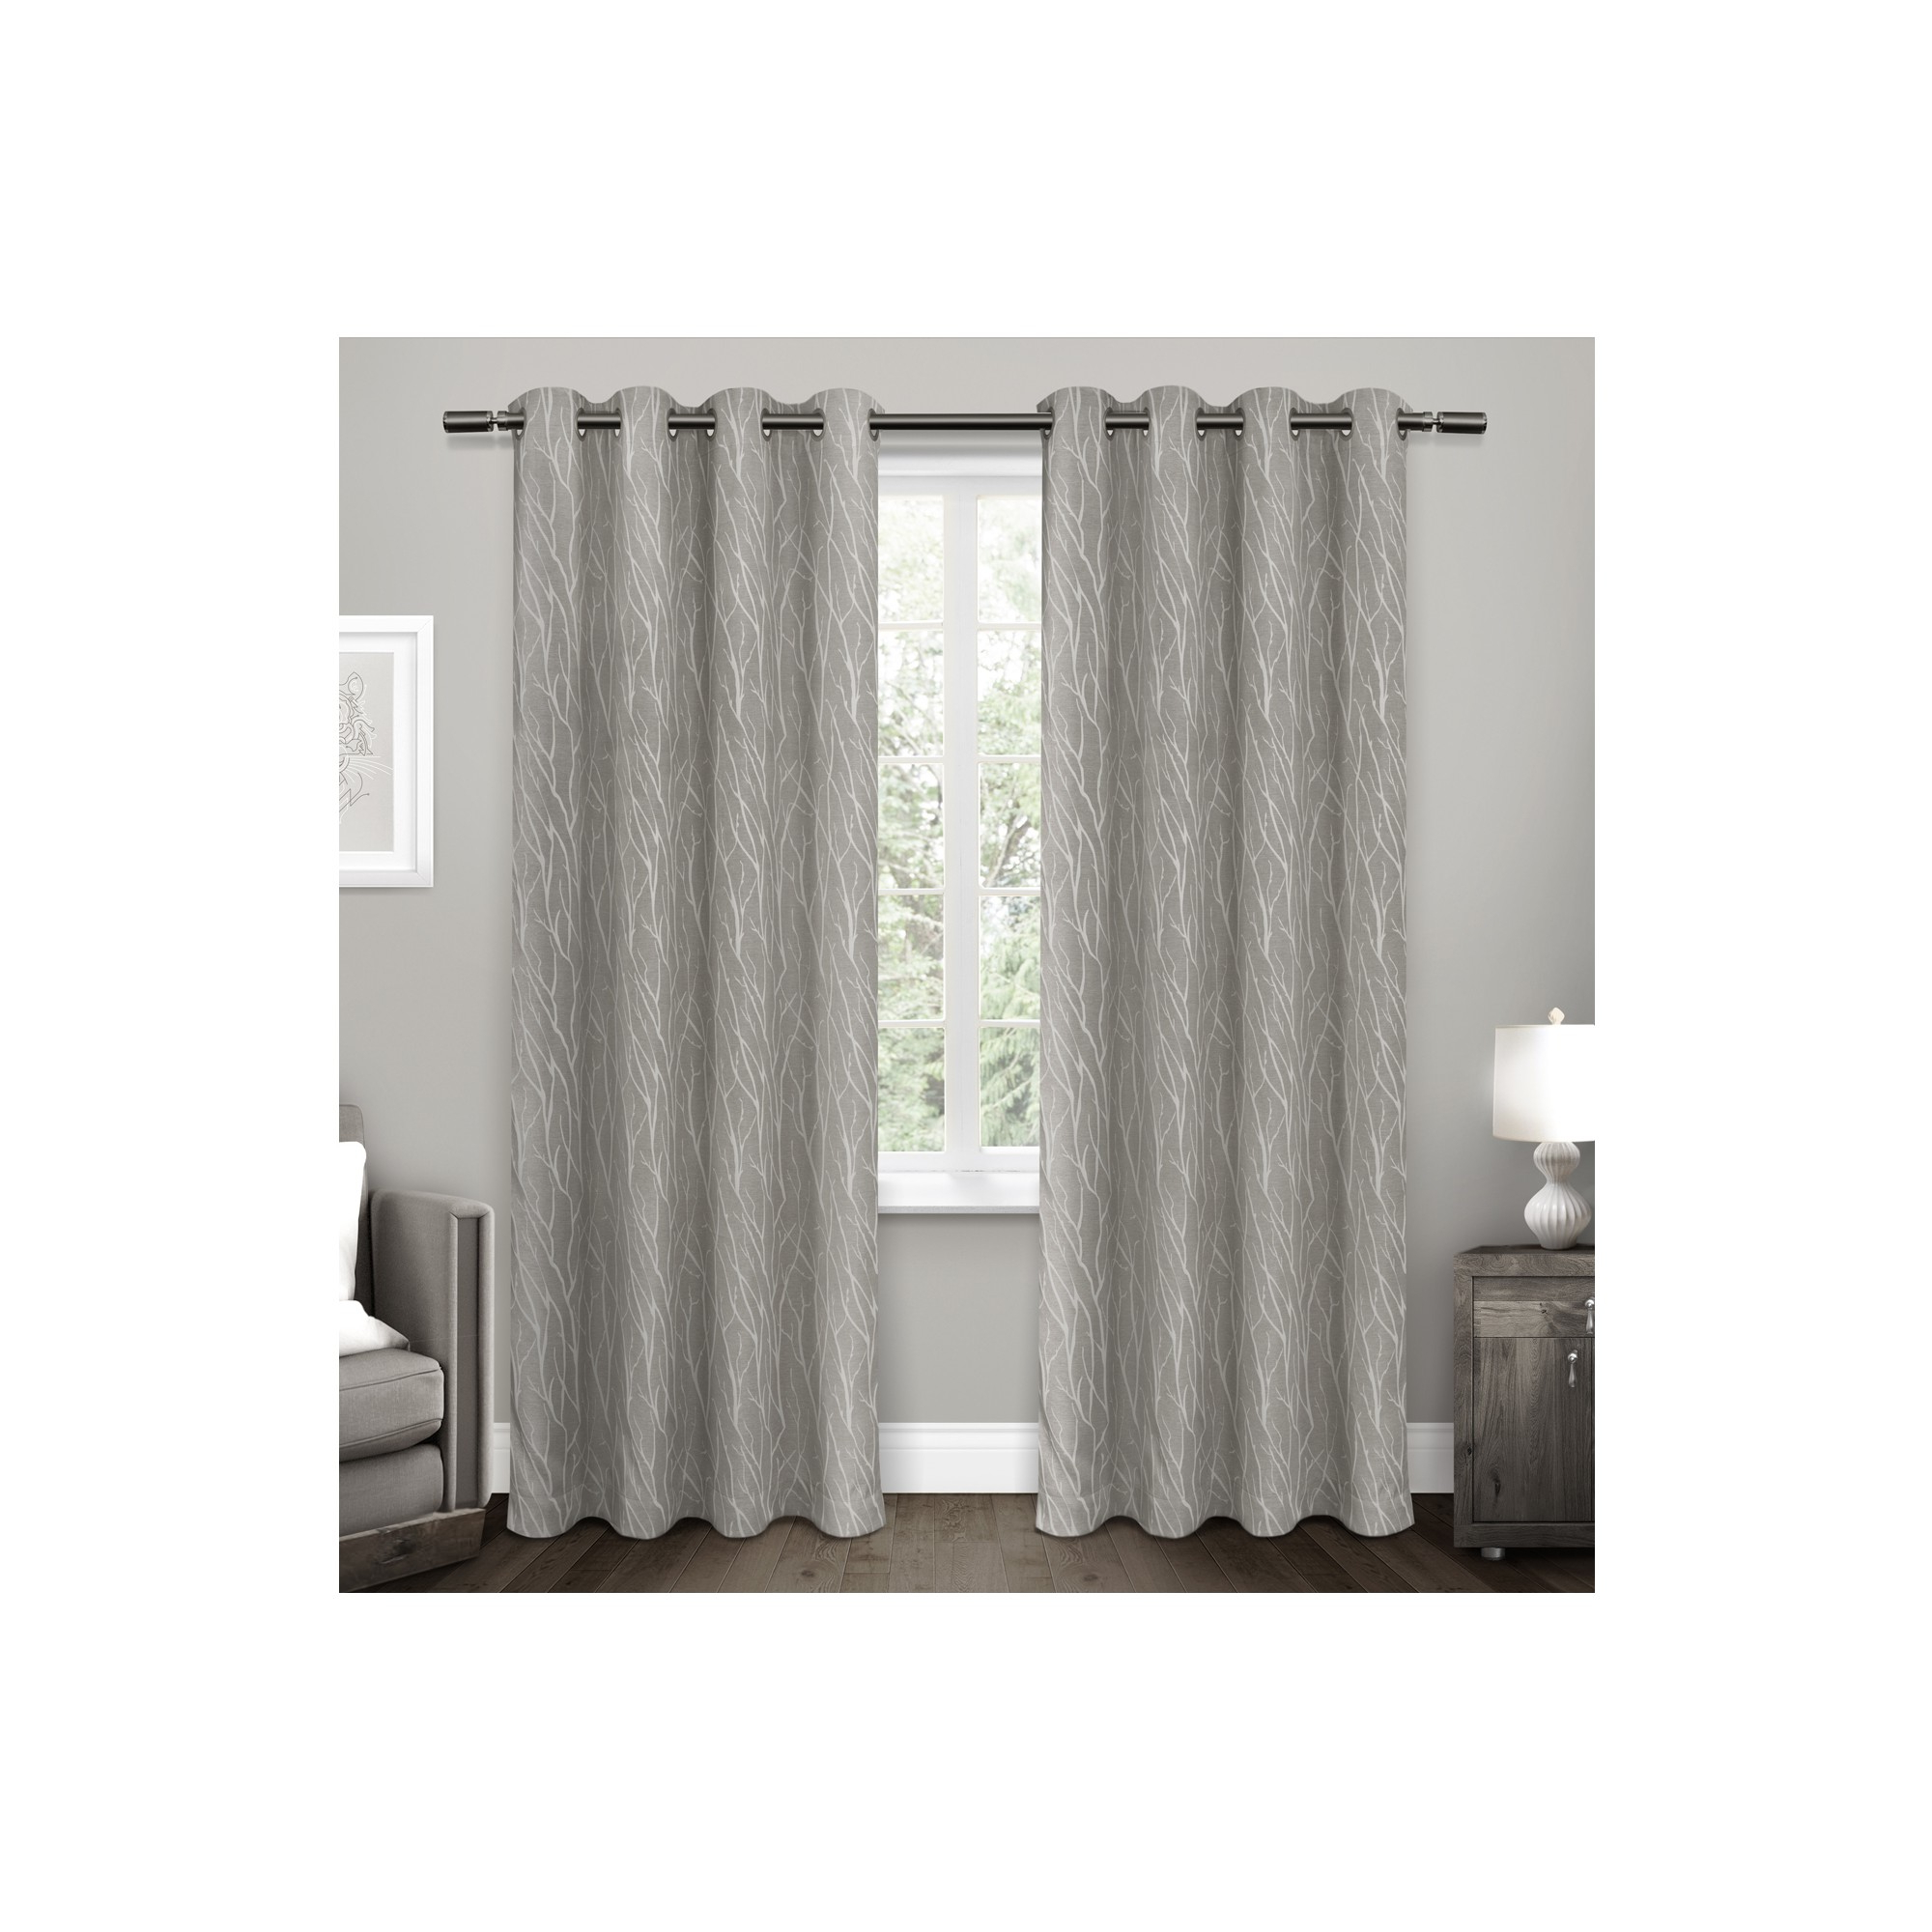 Forest Hill Woven Blackout Grommet Top Curtain Panel Pairs In Most Up To Date Forest Hill Woven Room Darkening Grommet Top Window Curtain (View 6 of 20)